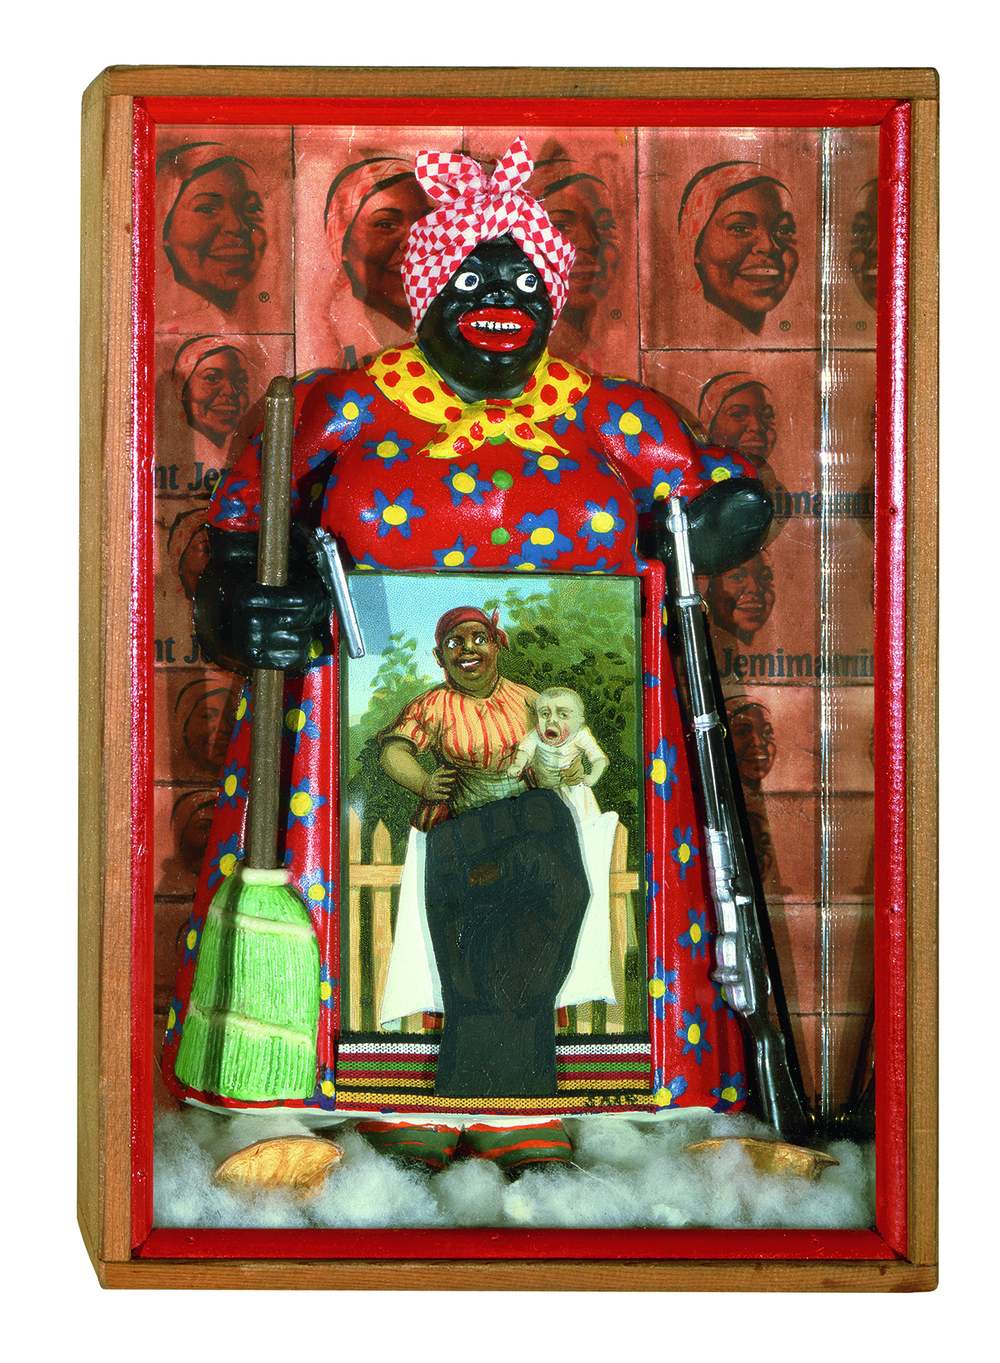 "Betye Saar (b.1926) The Liberation of Aunt Jemima, 1972 mixed media assemblage 11 3/4"" x 8"" x 2 3/4"", signed Collection of University of California, Berkeley Art Museum; purchased with the aid of funds from the National Endowment for the Arts (selected by The Committee for the Acquisition of Afro-American Art).  Courtesy of Michael Rosenfeld Gallery LLC, New York, NY.  Photograph by Joshua Nefsky."